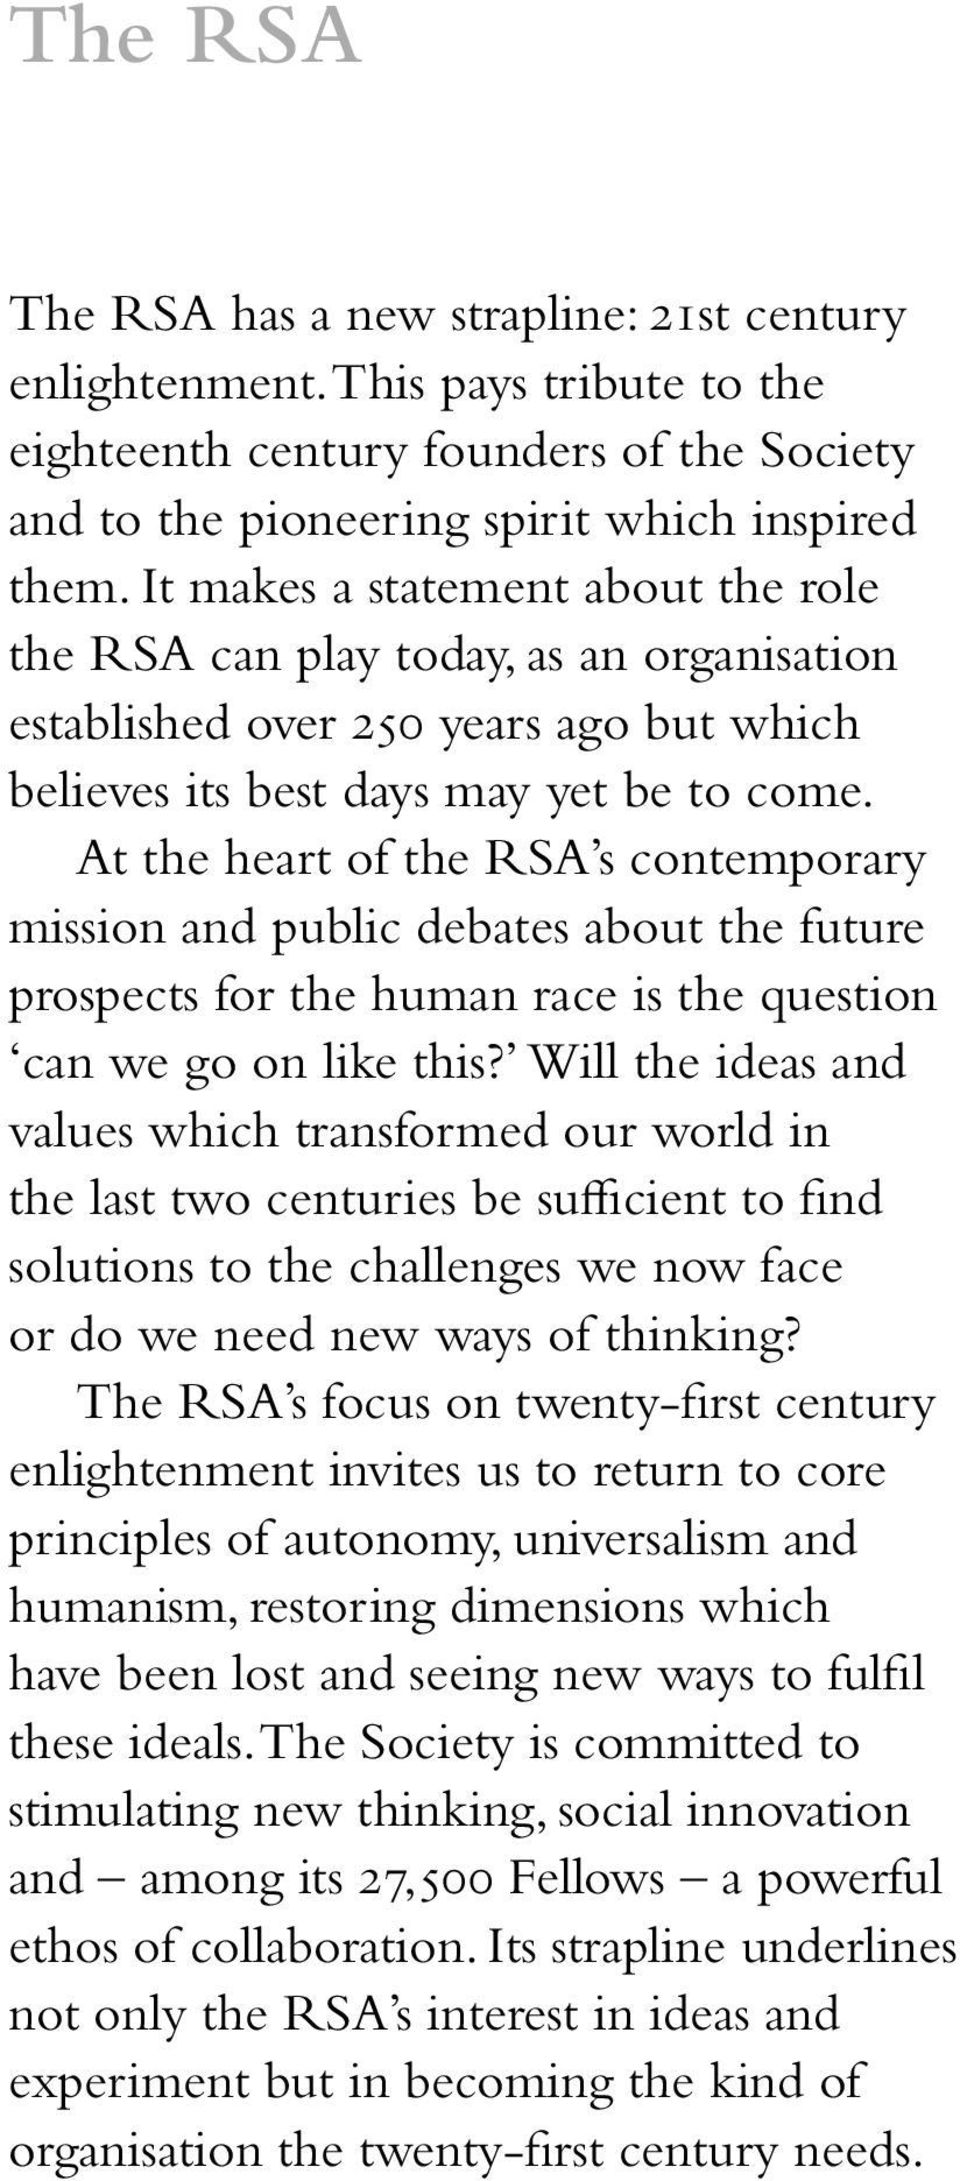 At the heart of the RSA s contemporary mission and public debates about the future prospects for the human race is the question can we go on like this?